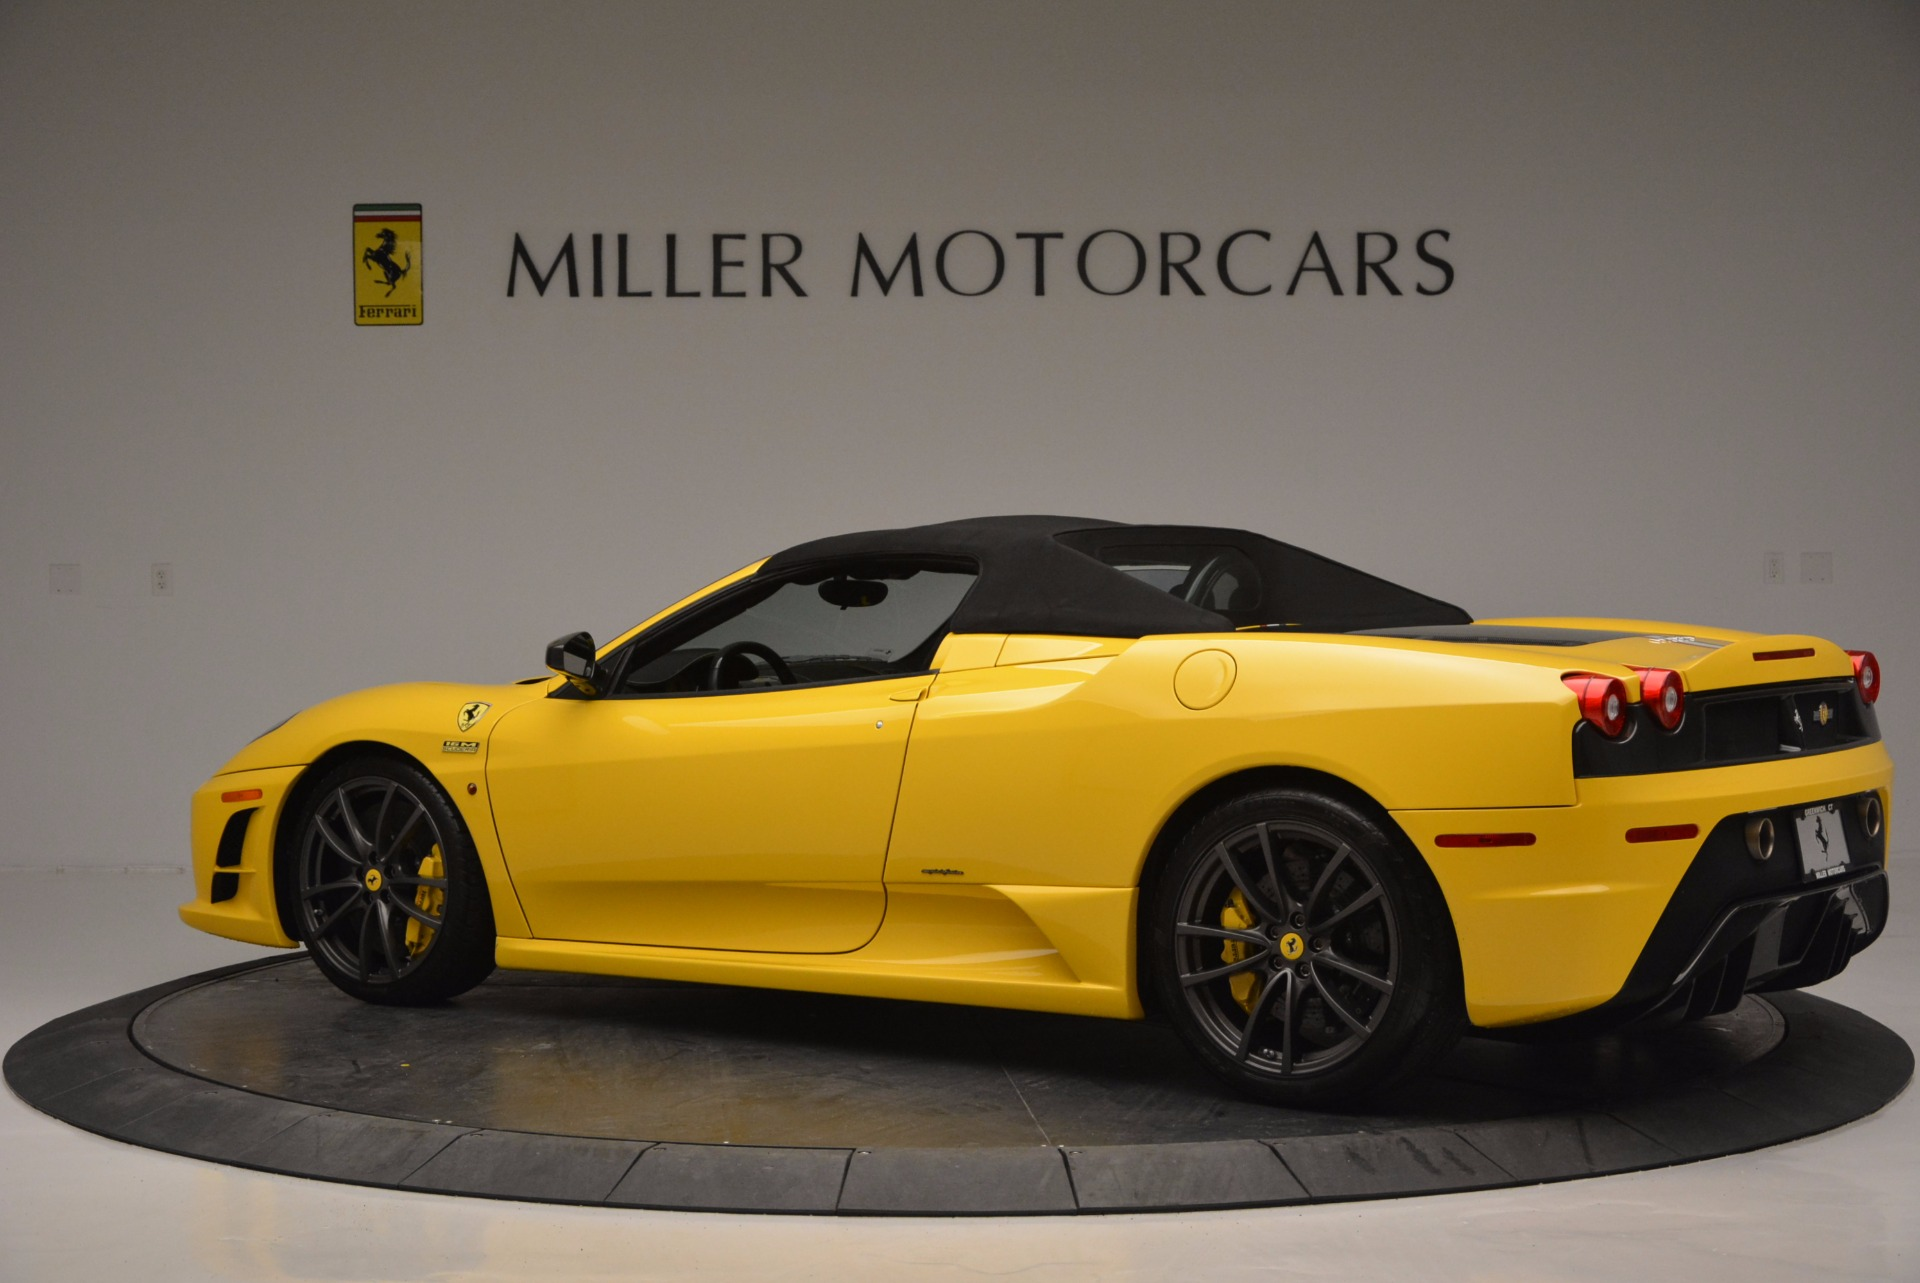 Used 2009 Ferrari F430 Scuderia 16M For Sale In Greenwich, CT 856_p16